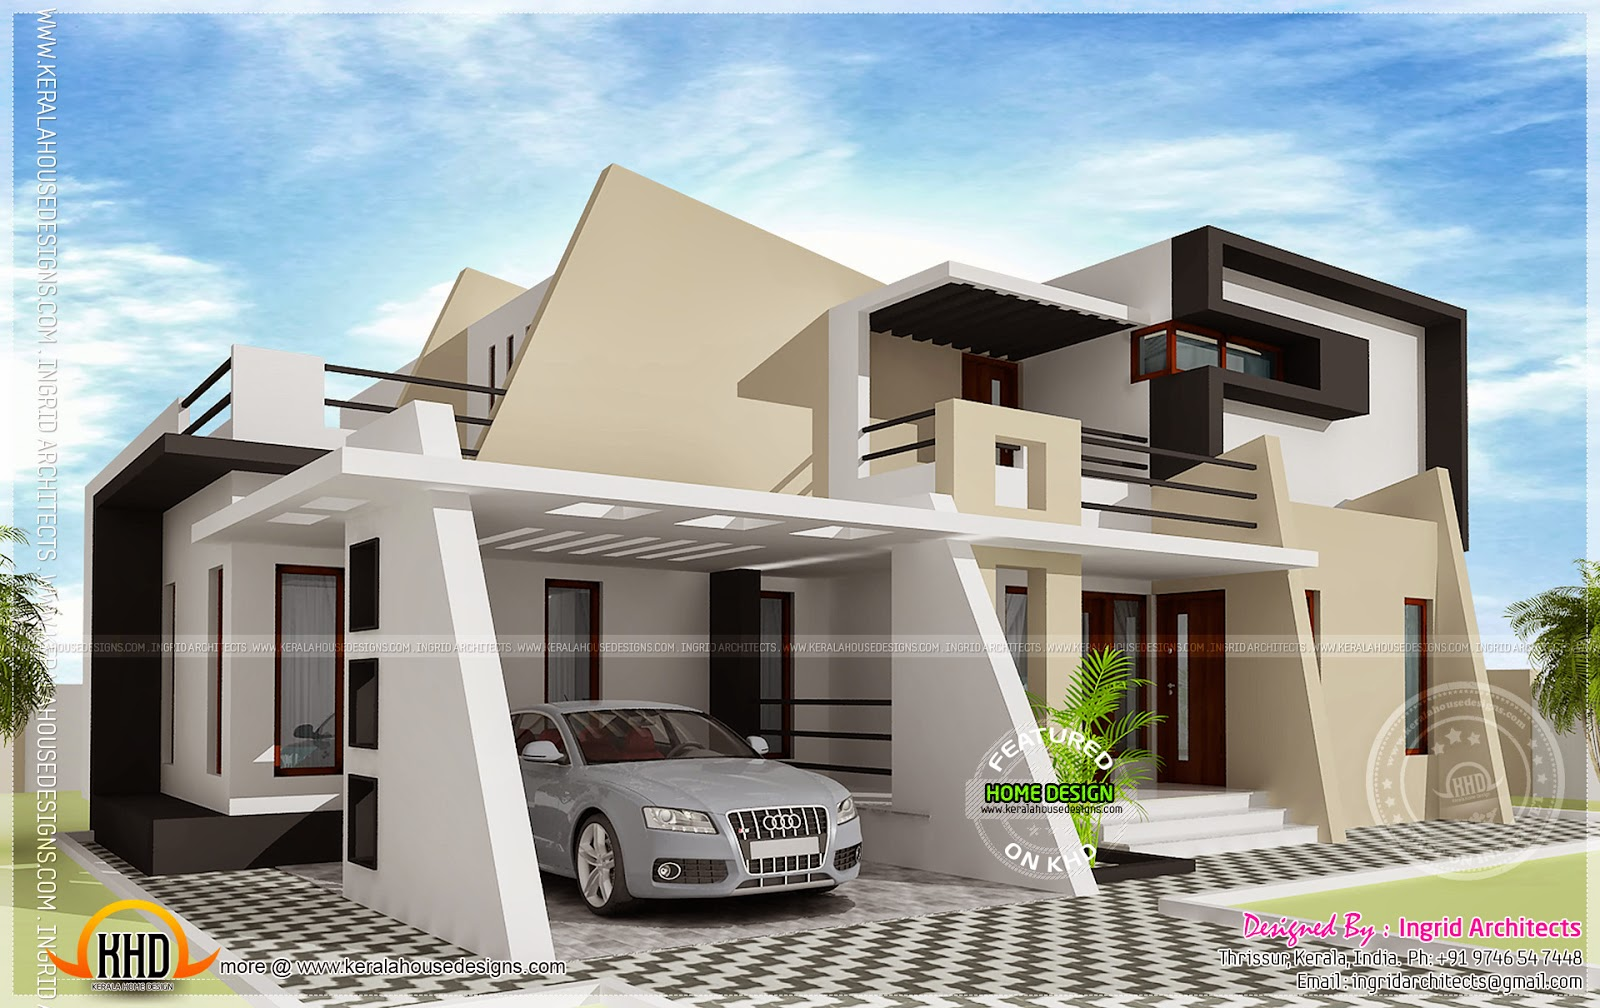 March 2014 kerala home design and floor plans - New house design ...